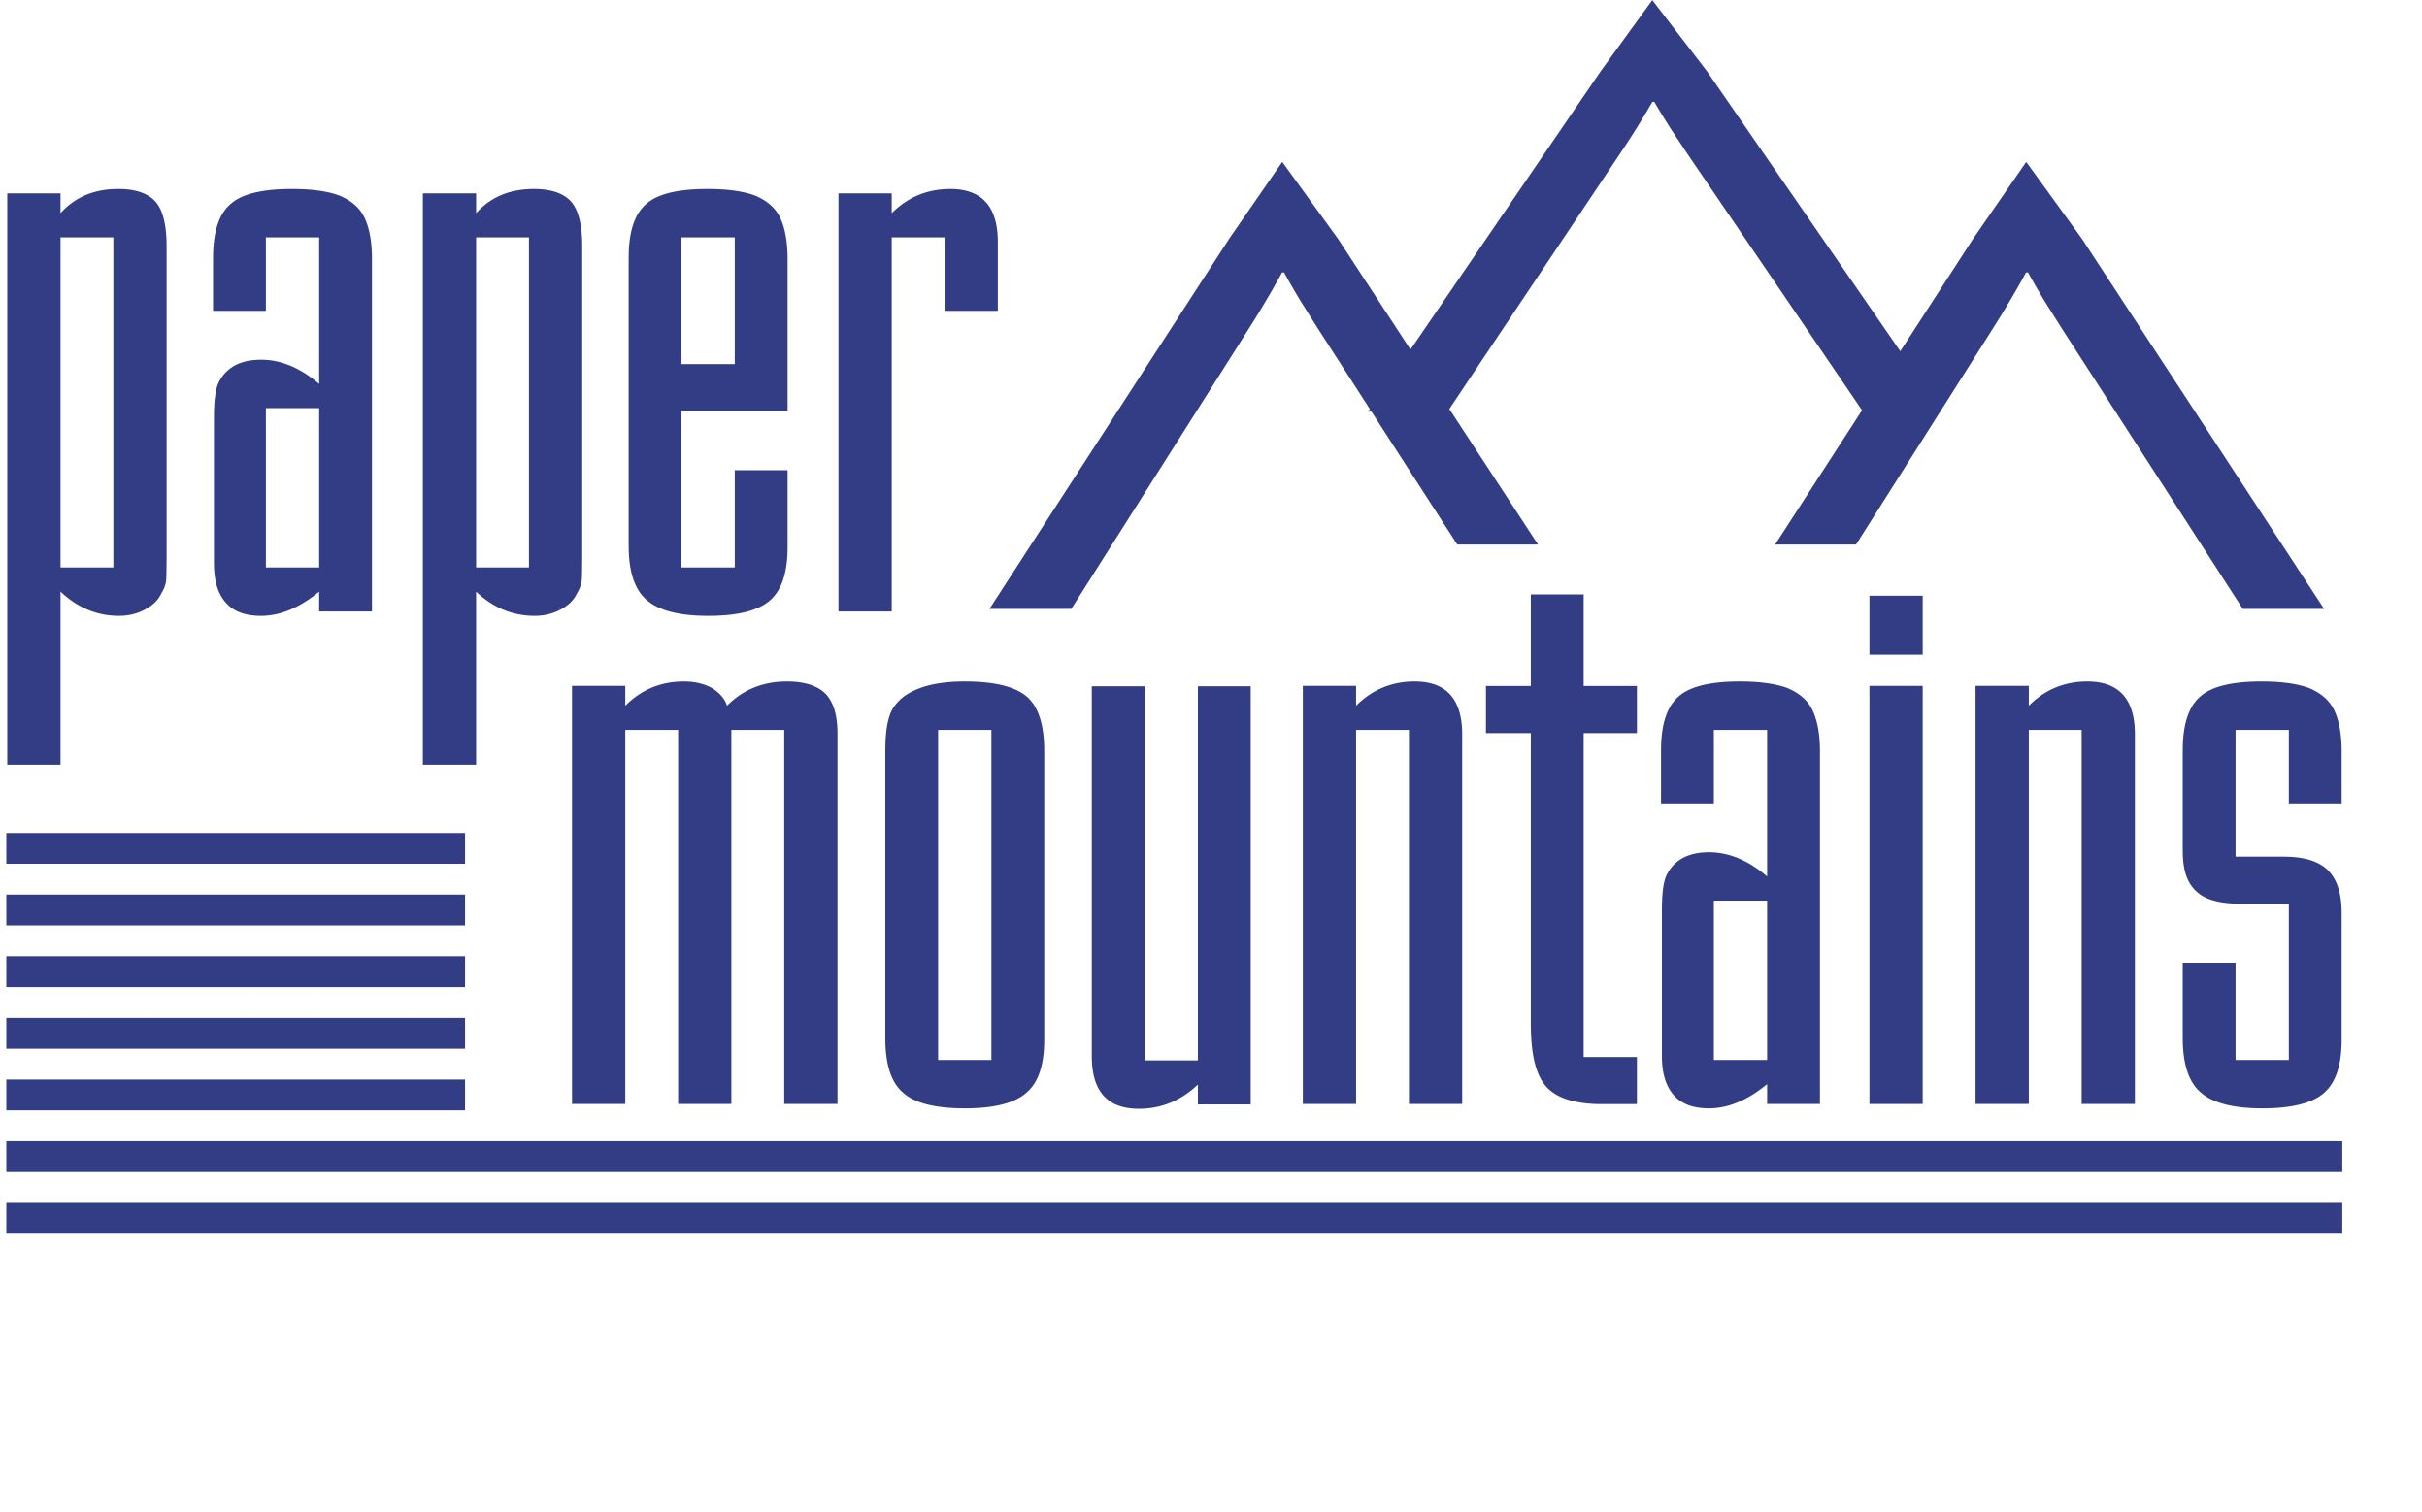 PaperMountains - Document Management , EDMS, Paper Document Scanning Services Scanning, Secure Shredding Services, Hard Drive Shredding Services & Electronic Document Archiving with Physical Document Storage